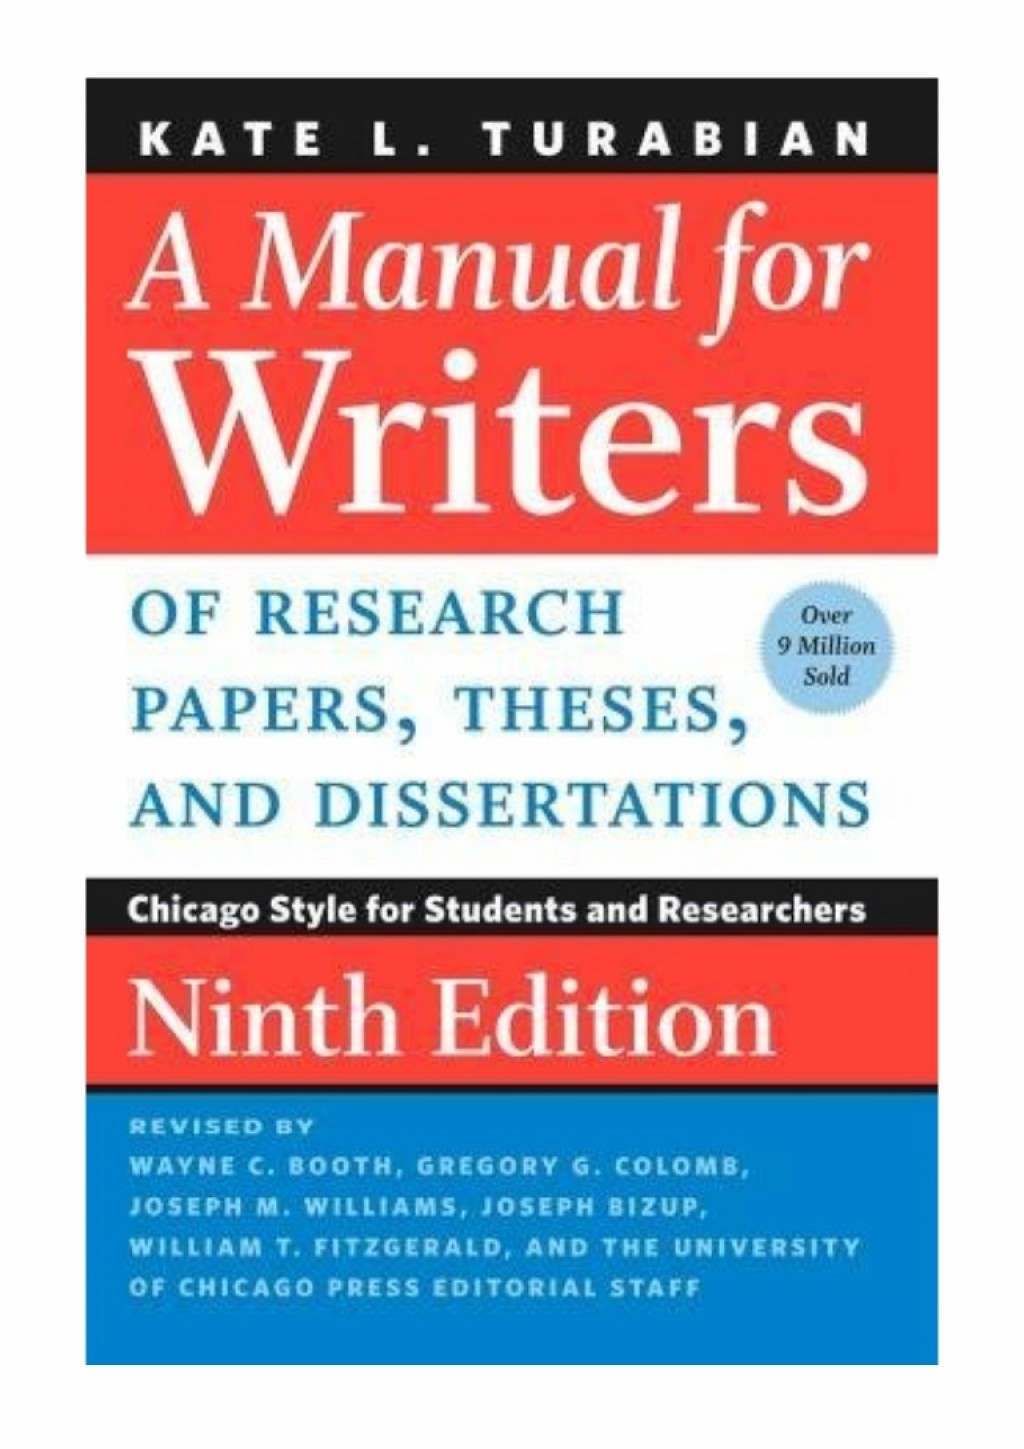 010 Manual For Writers Of Research Papers Theses And Dissertations Paper 022643057x Amanualforwritersofresearchpapersthesesanddissertationsnintheditionbykatel Thumbnail Magnificent 8th 13 A 9th Edition Apa Large